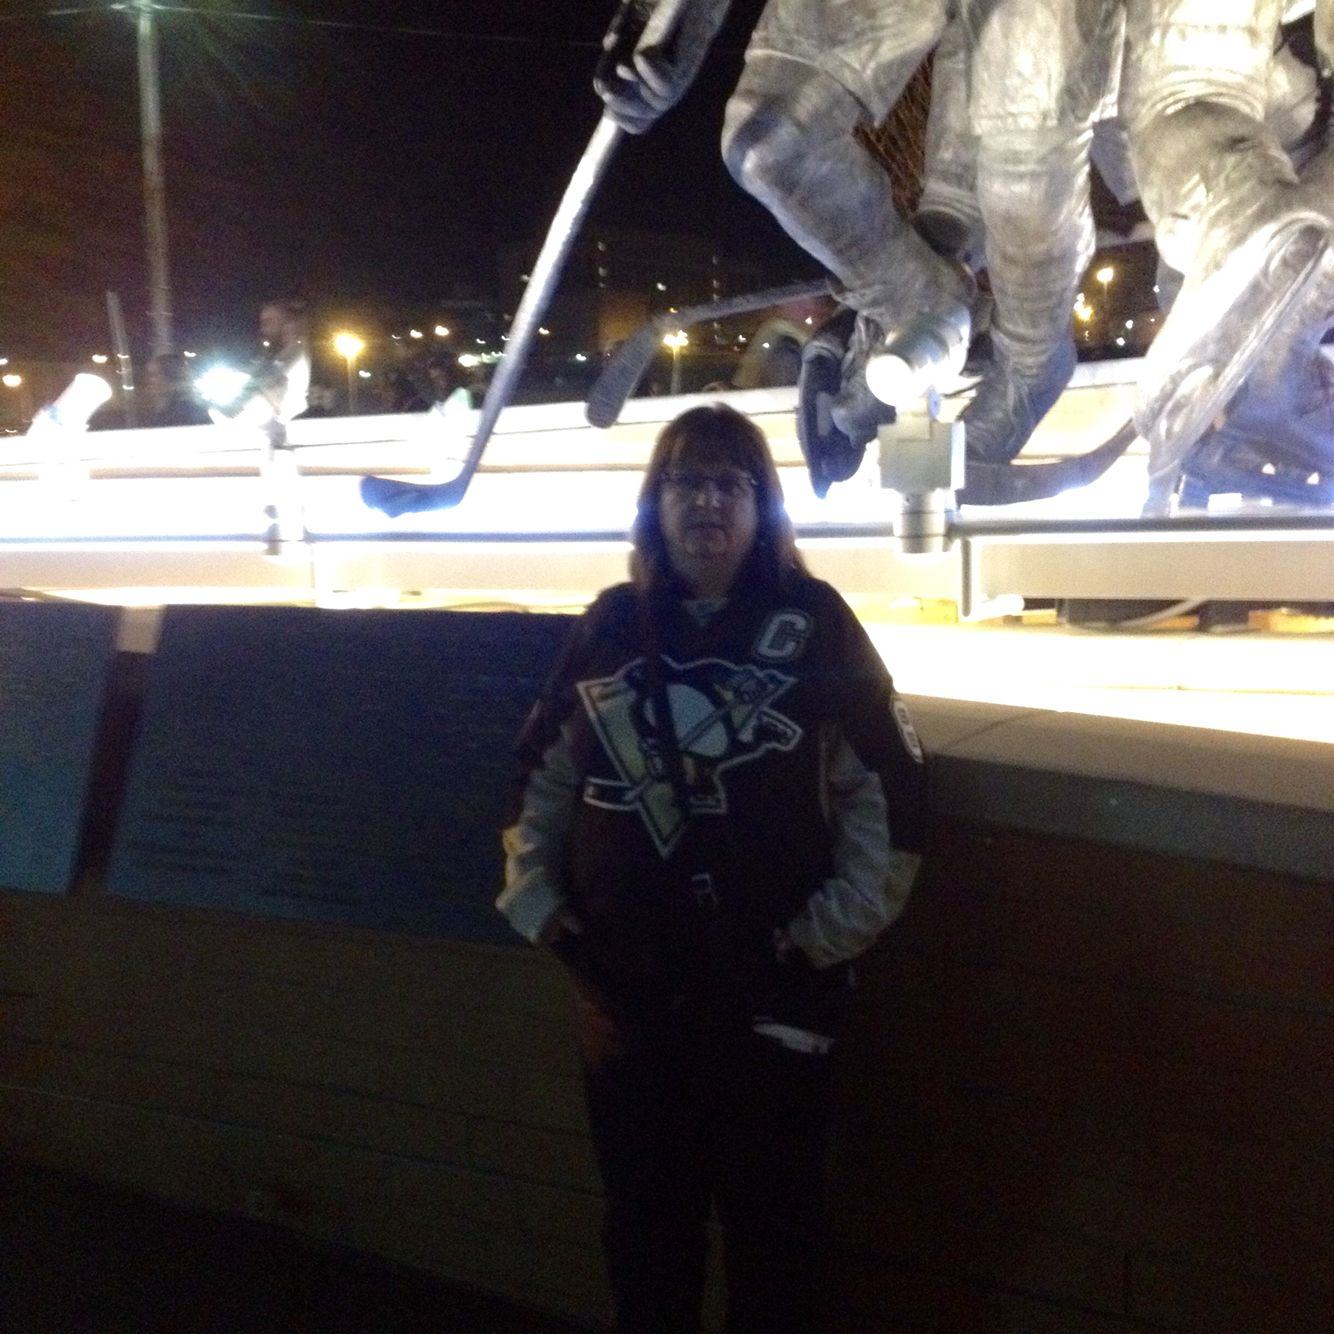 At the consol arena in Pittsburgh